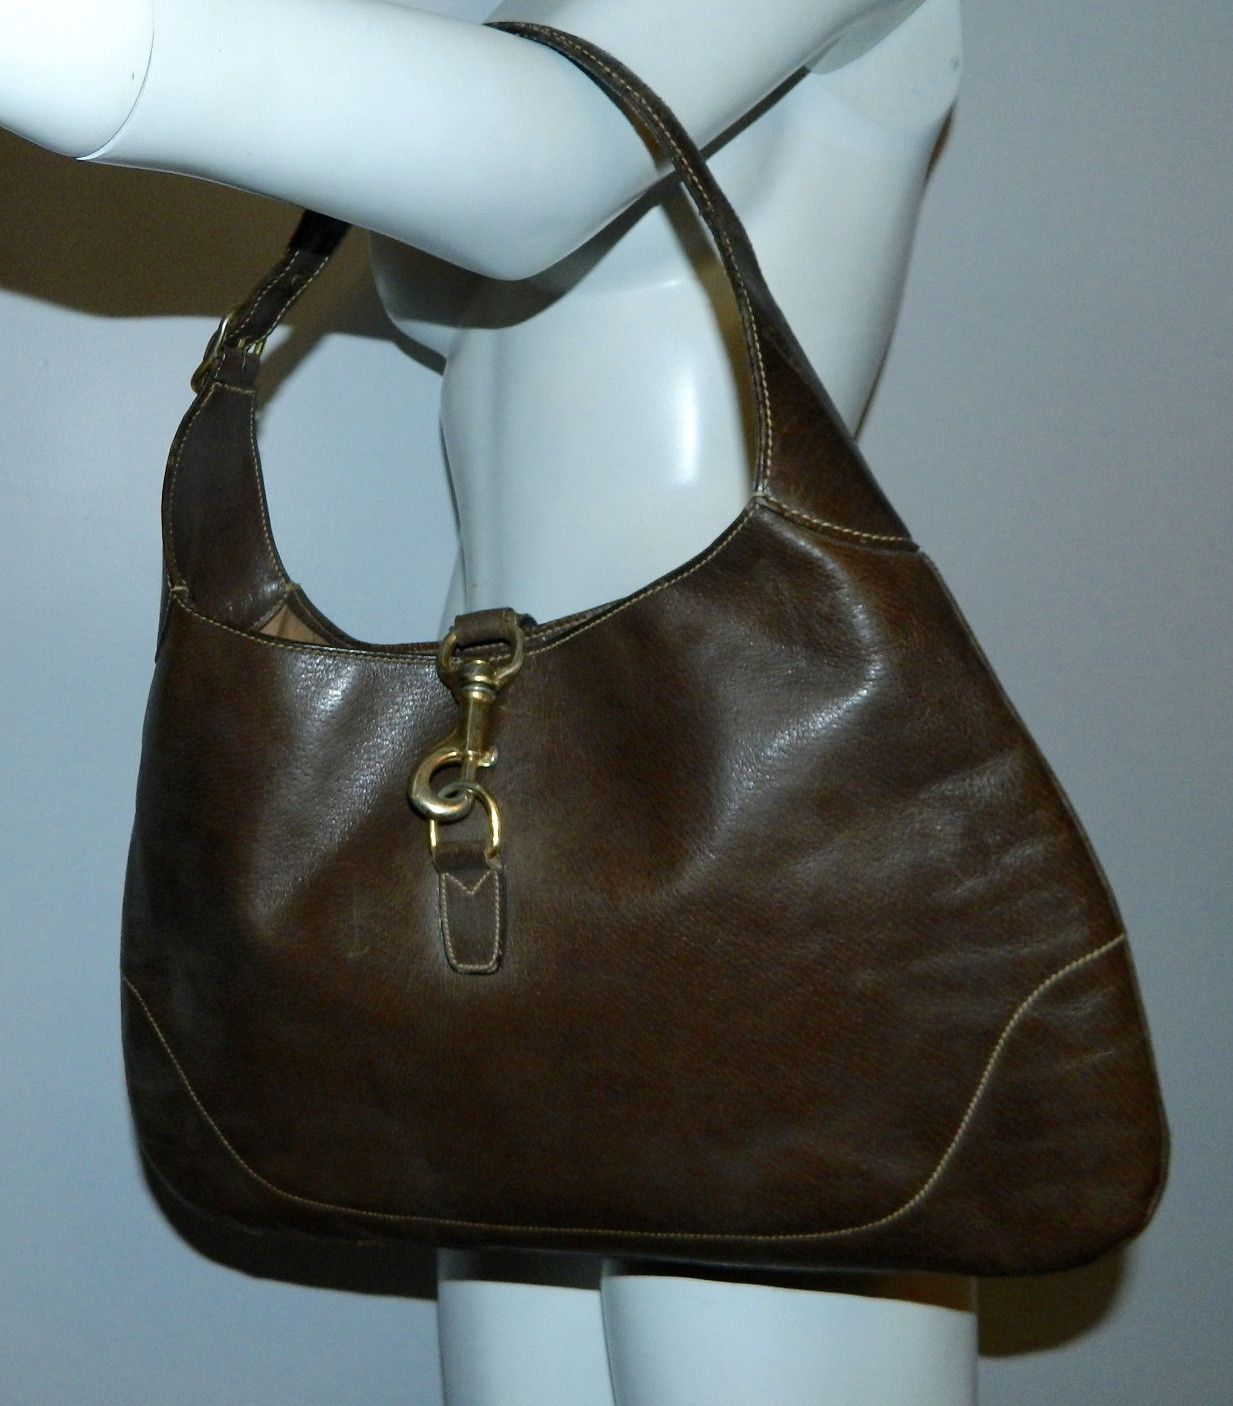 Vintage Gucci Bag Brown Leather 1960s Jackie O Bouvier Purse